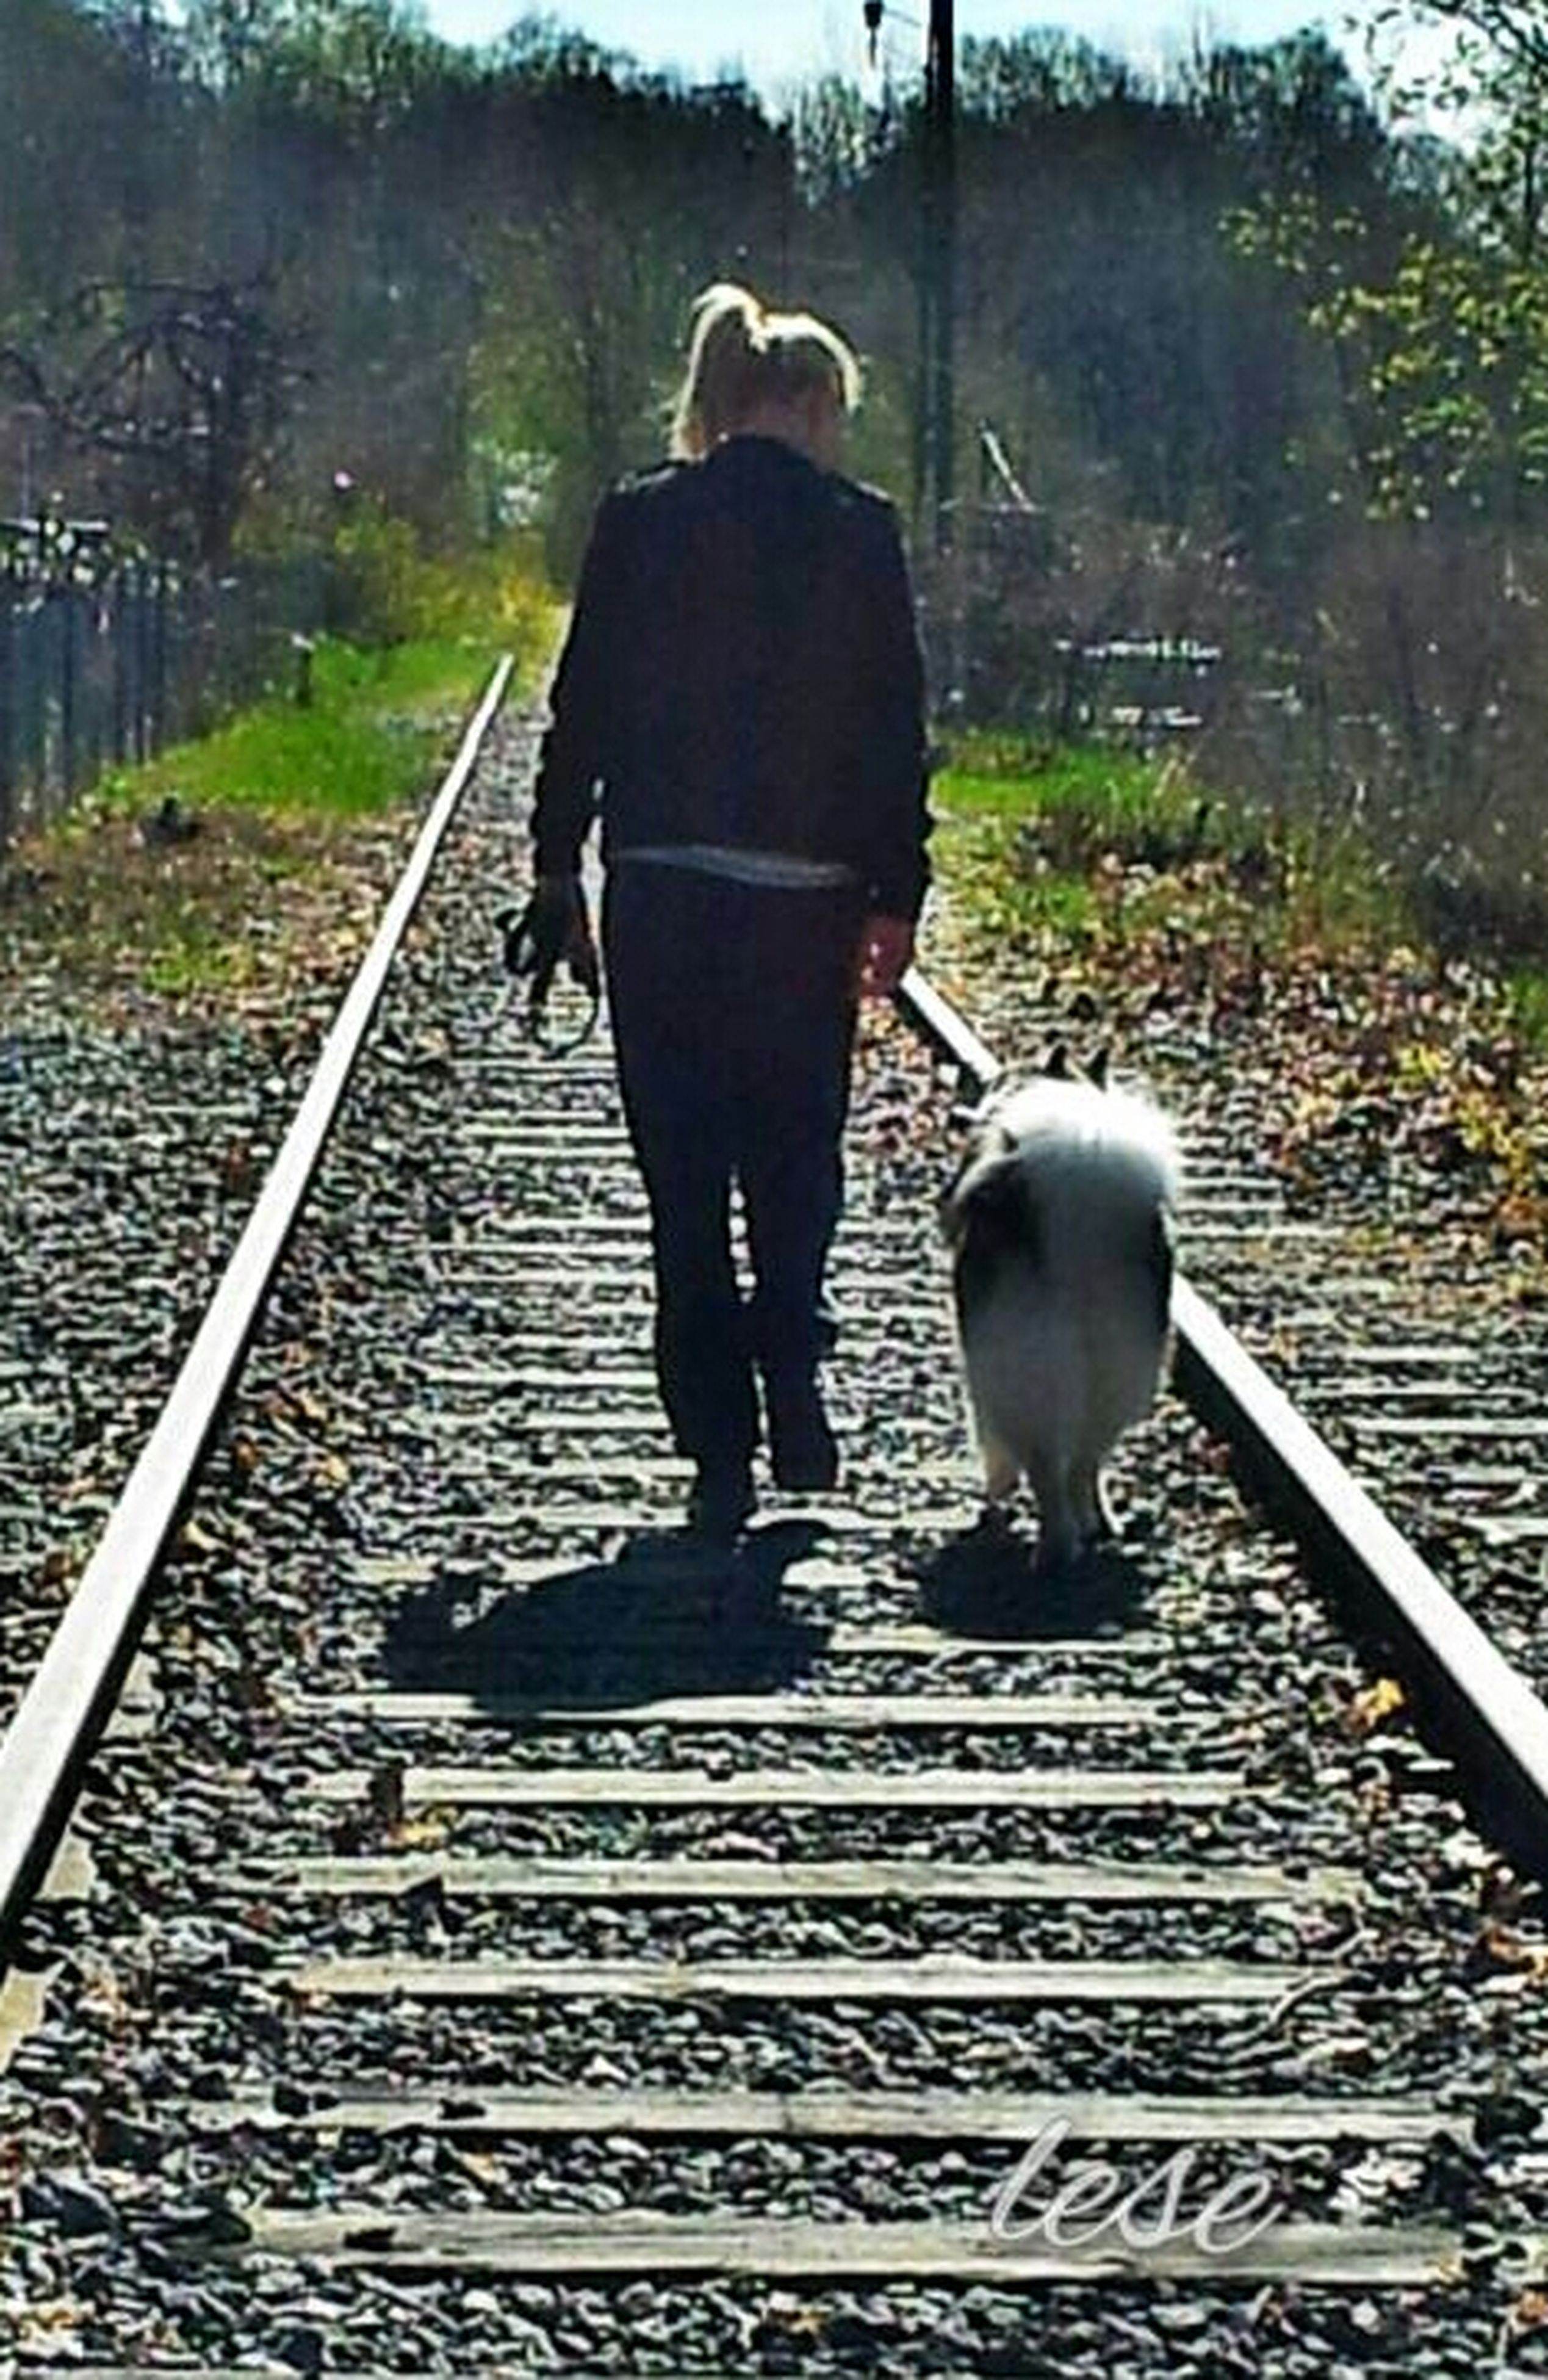 rear view, lifestyles, the way forward, full length, railroad track, men, leisure activity, transportation, walking, standing, diminishing perspective, person, rail transportation, tree, casual clothing, day, vanishing point, railing